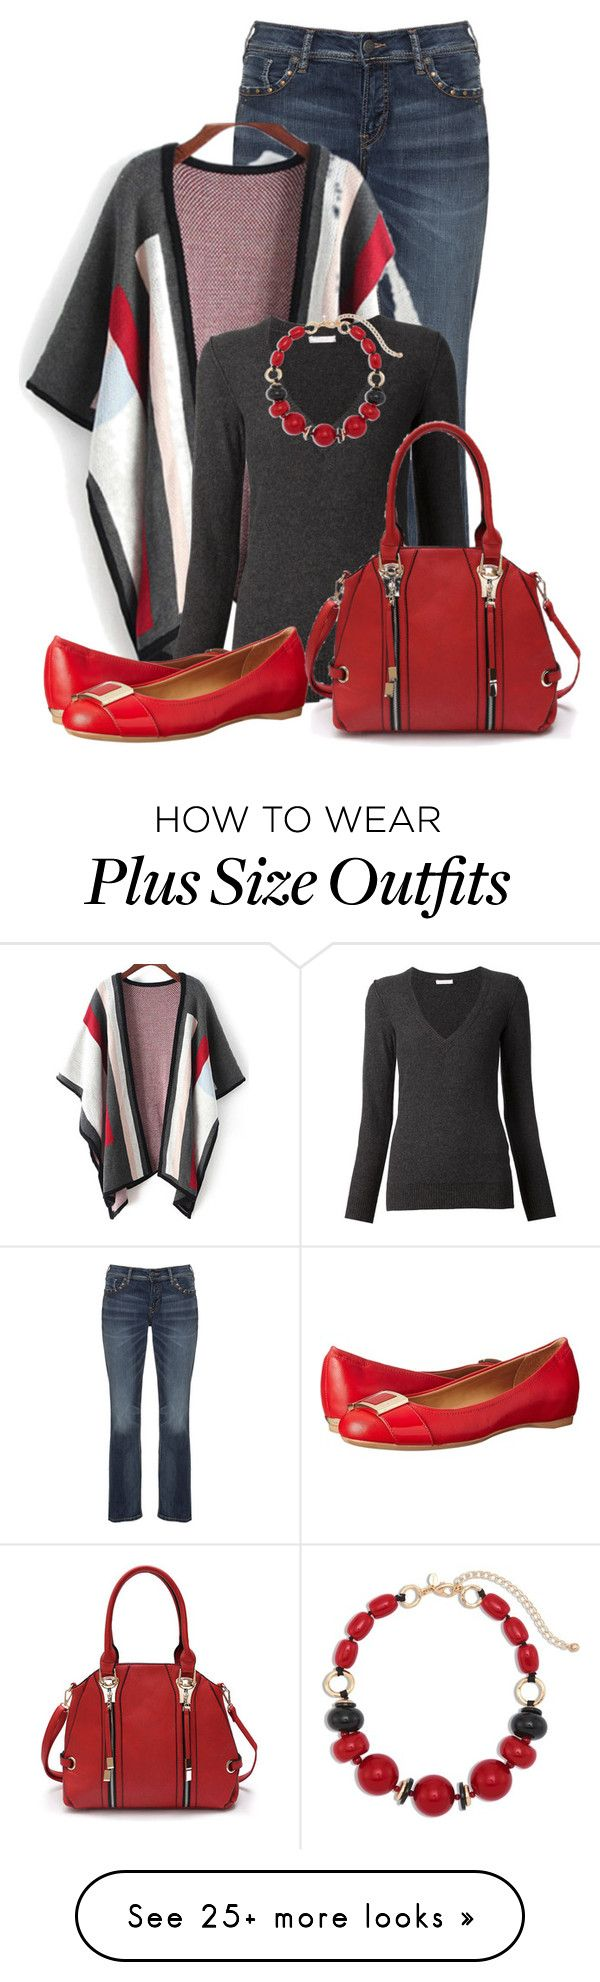 """Untitled #13248"" by nanette-253 on Polyvore featuring Silver Jeans Co., Chloé, Calvin Klein and Chico's"